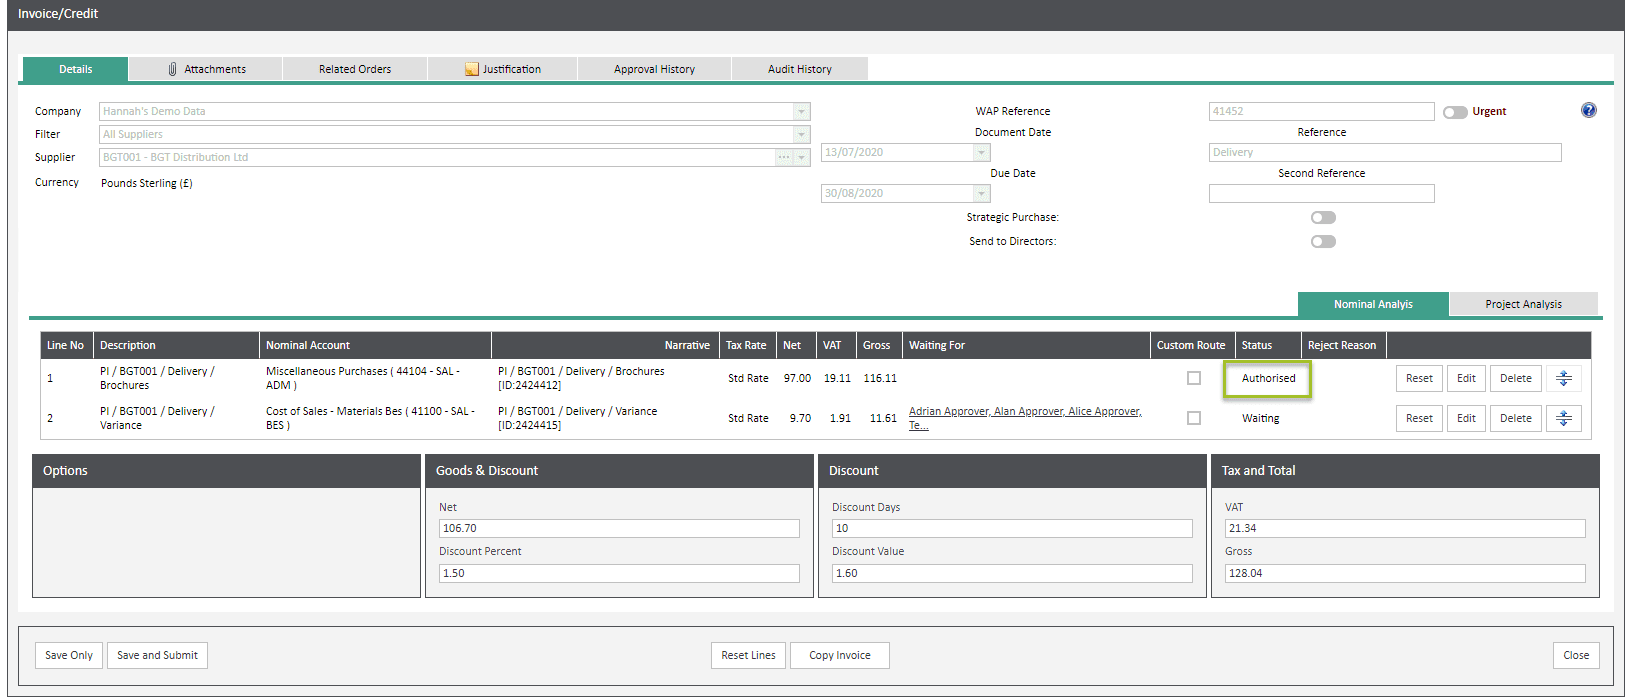 Sicon WAP Invoice Help and User Guide - Invoice HUG Section 6.2 Image 6